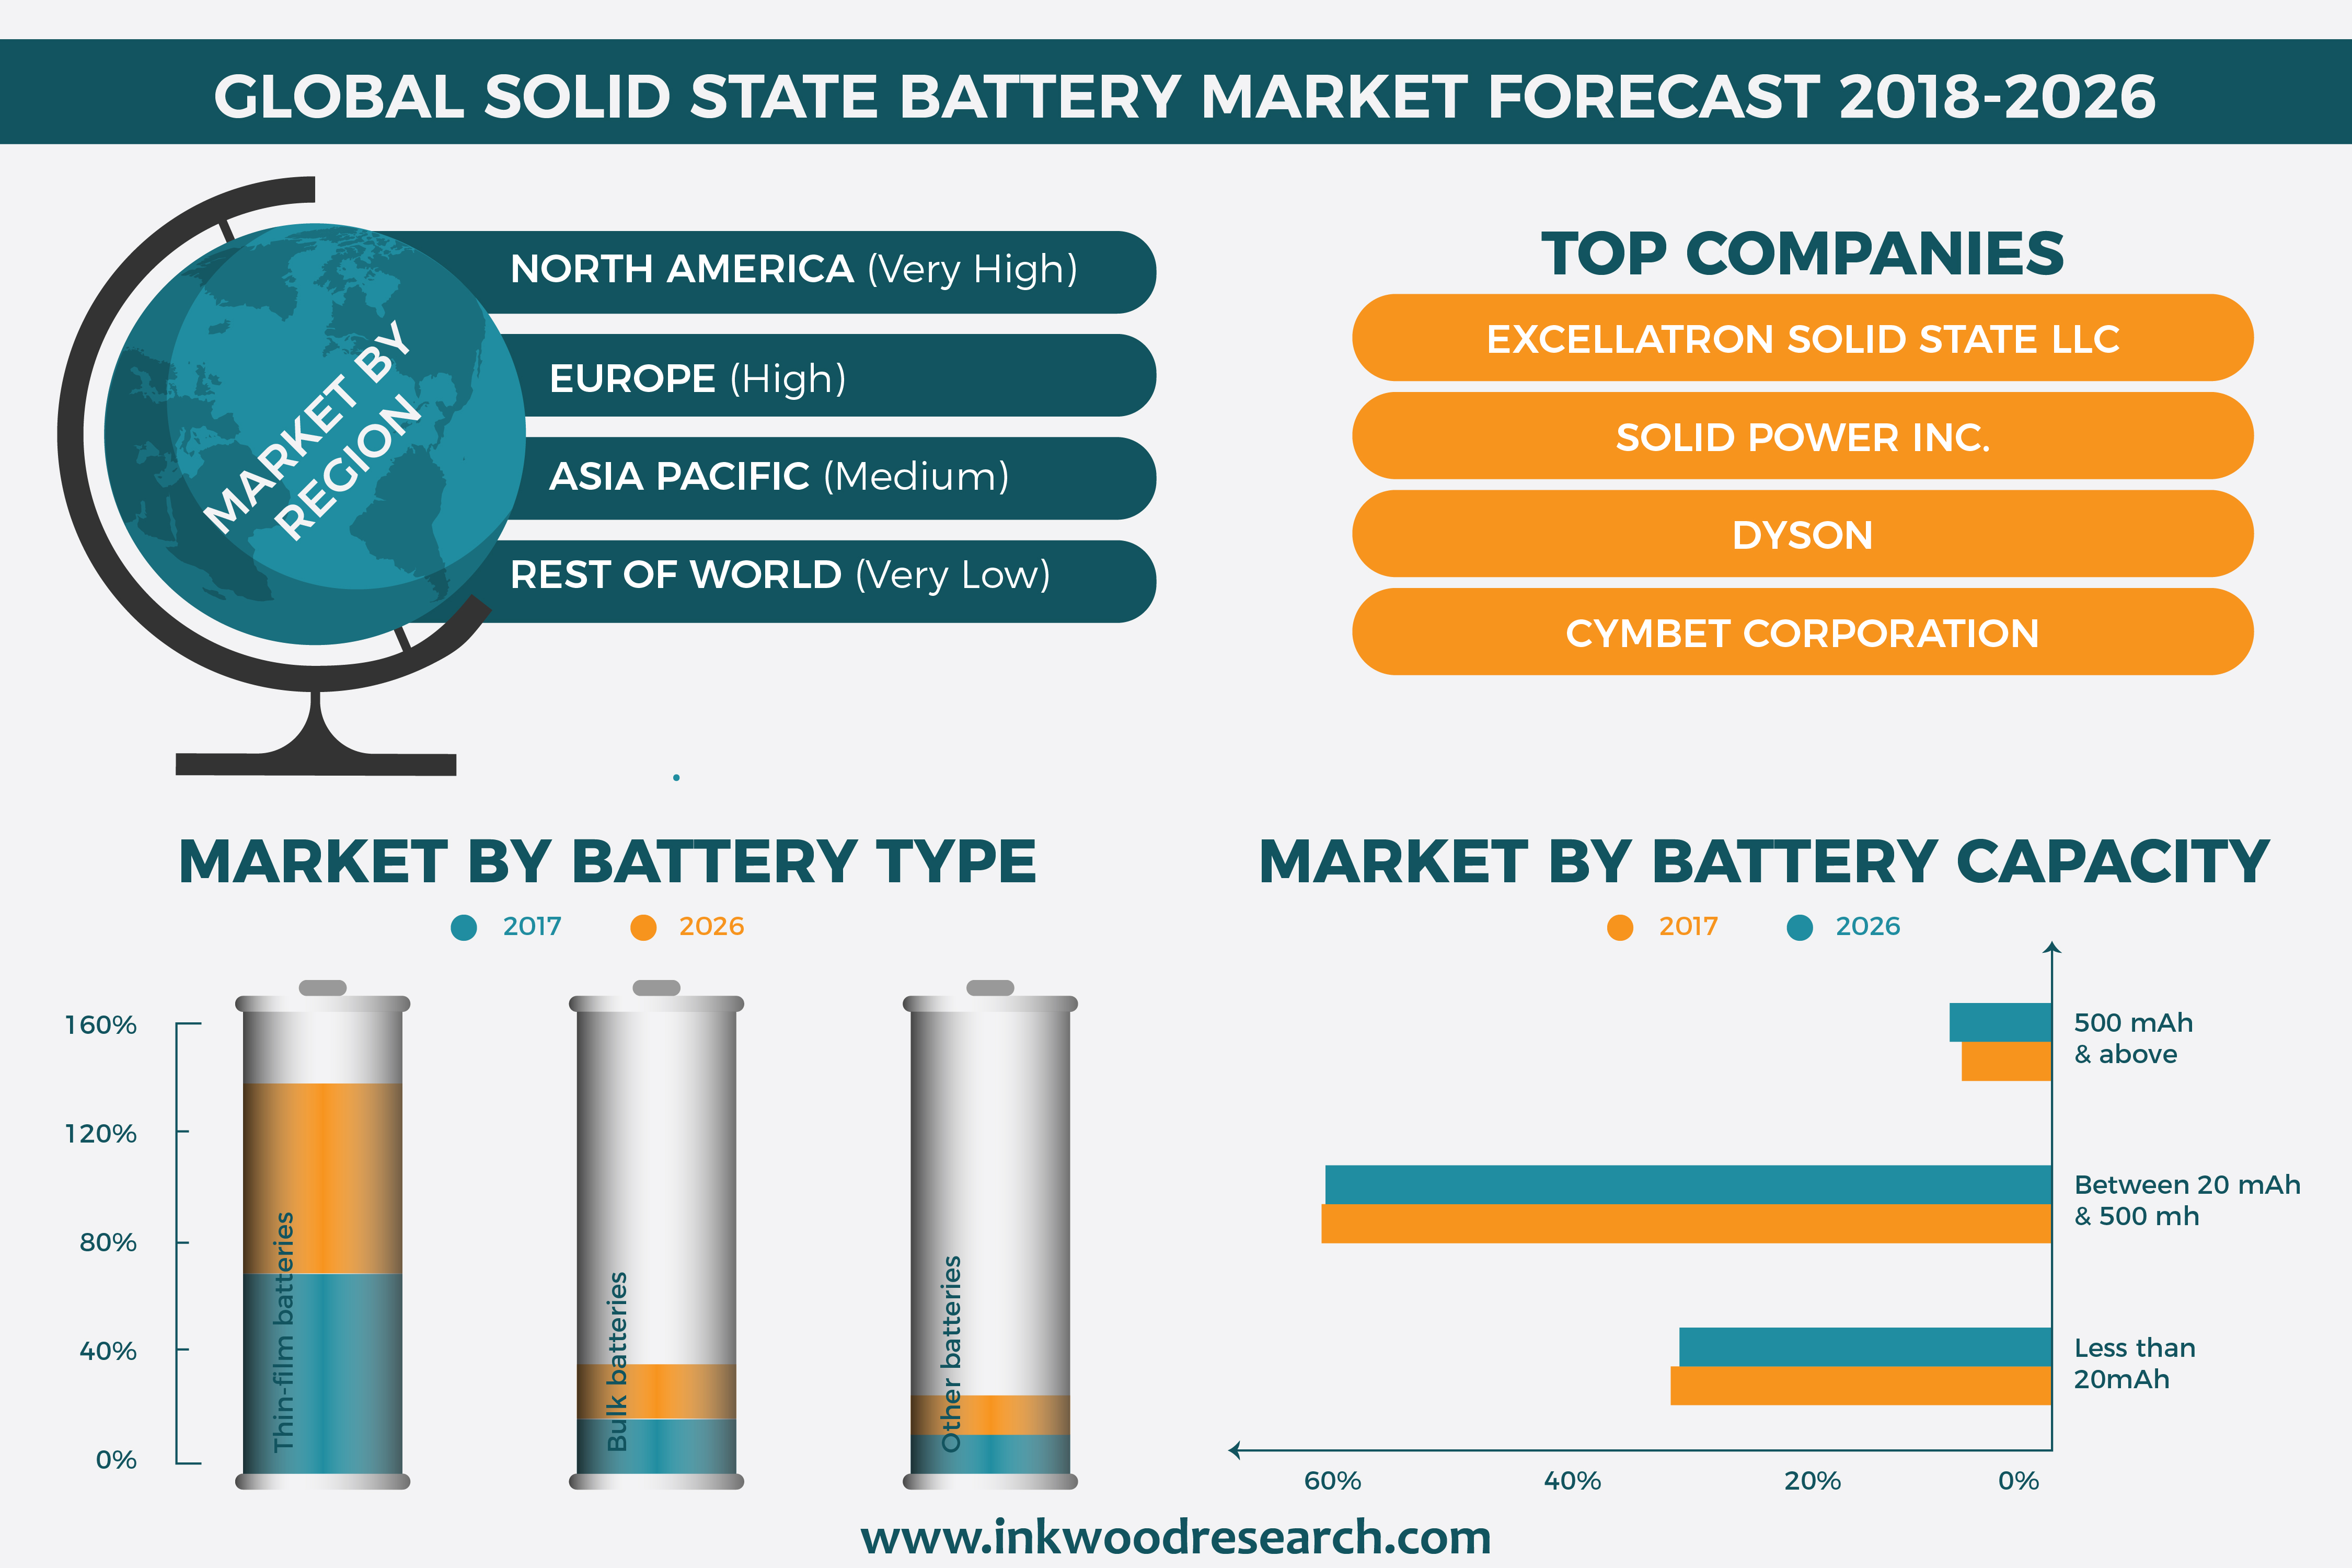 Global Solid State Battery Market To Grow At An Estimated Cagr Of